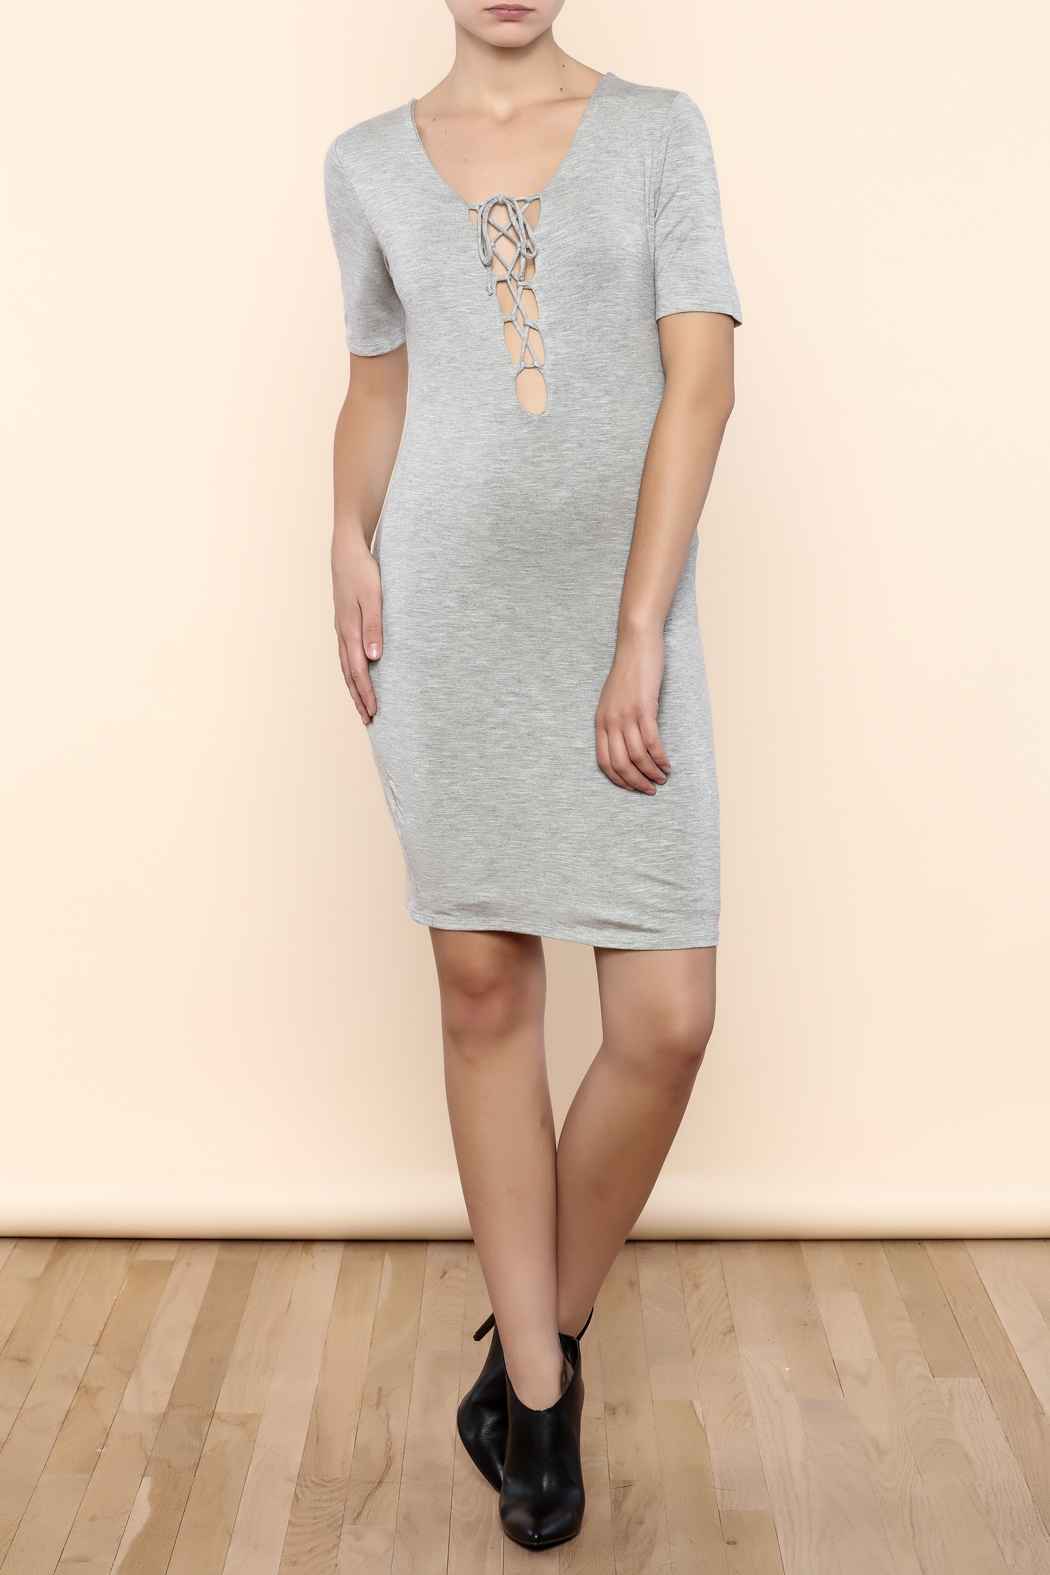 De Lacy DeLacy Carley Dress - Front Full Image